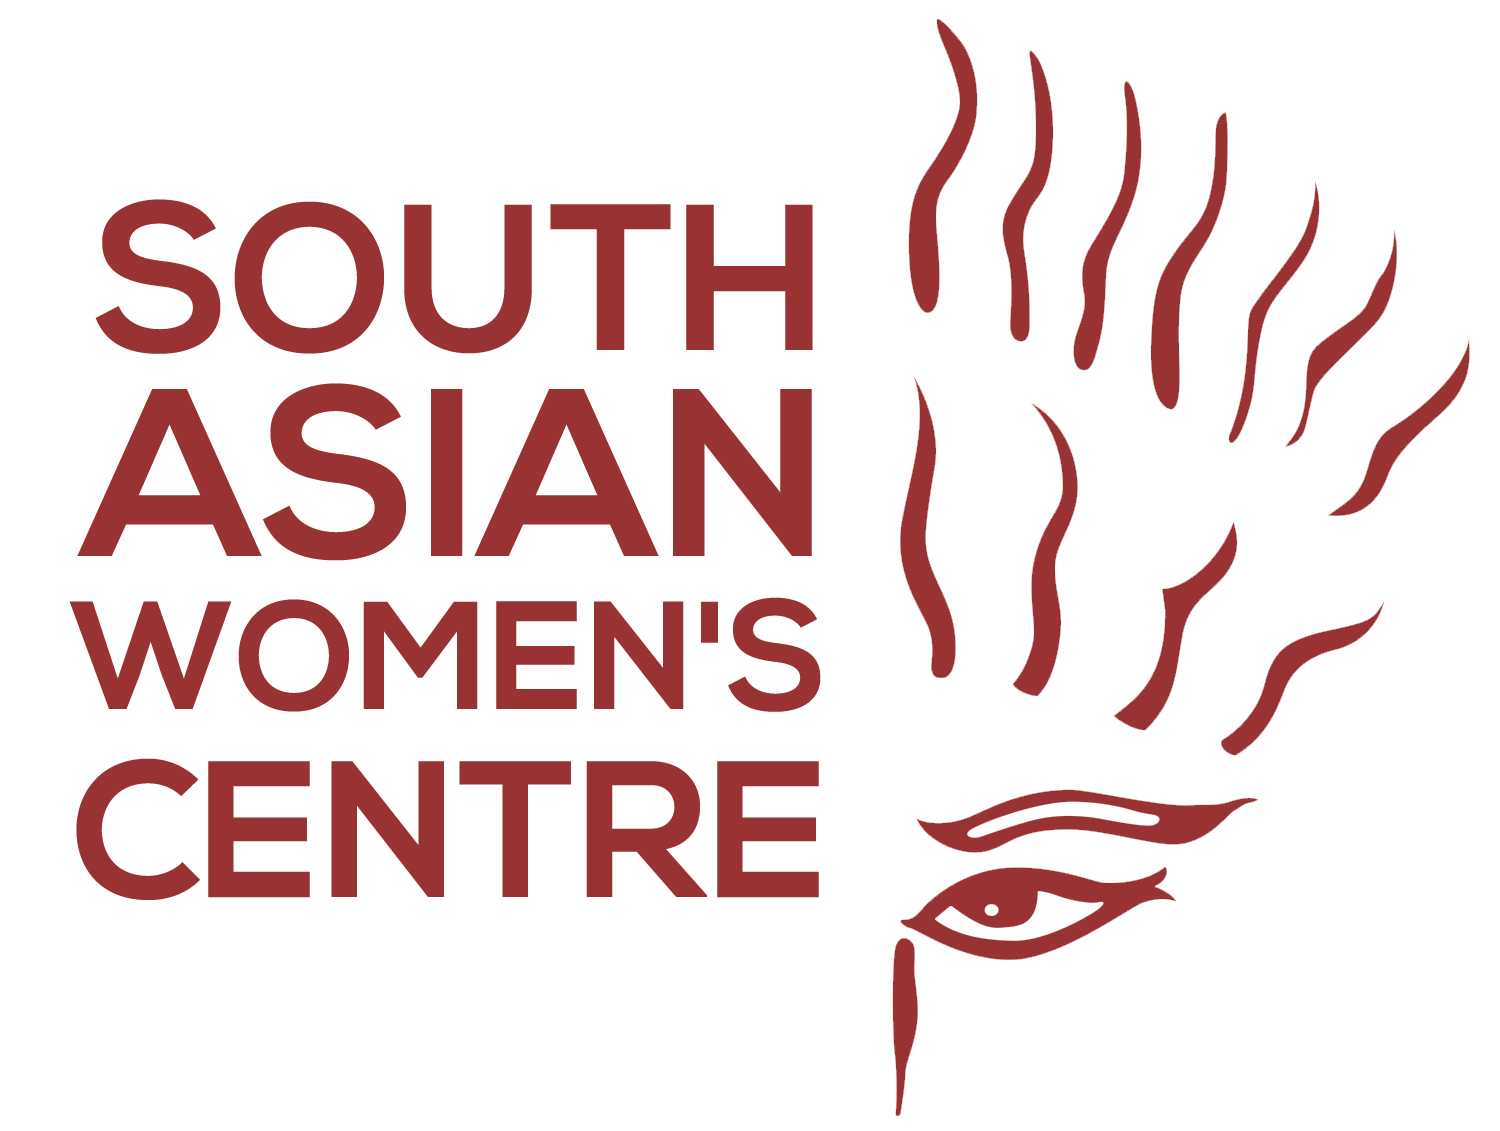 Women directors and south asian mother